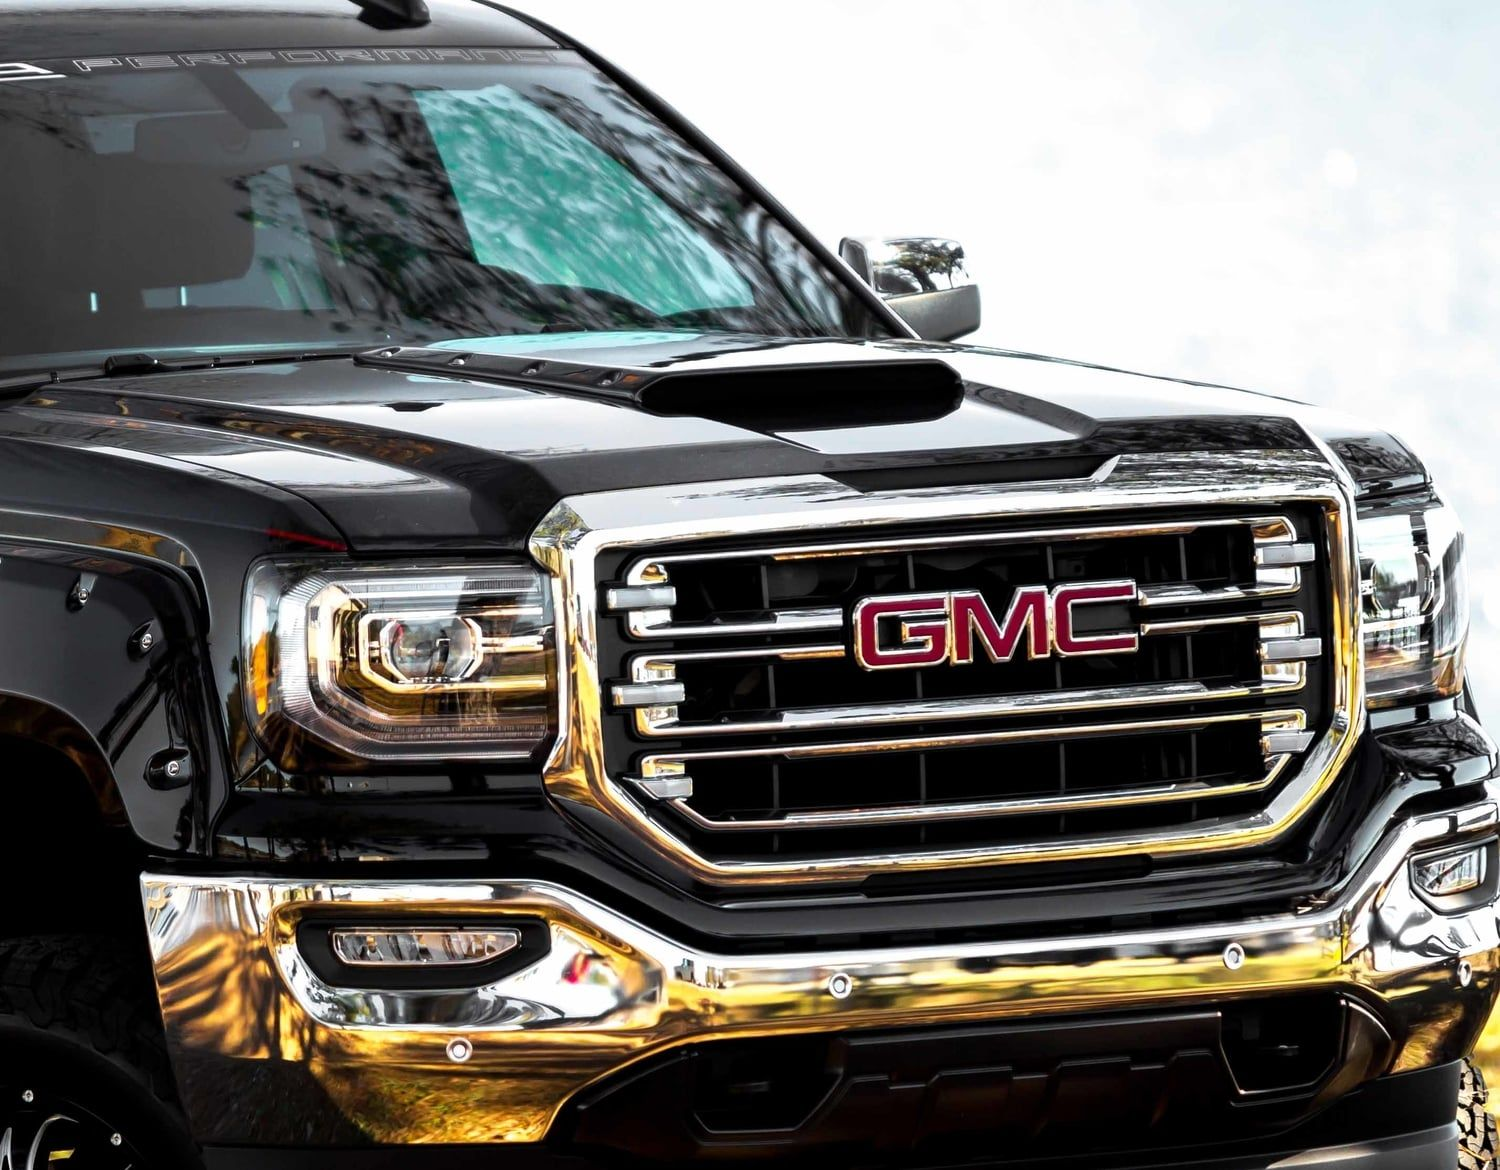 Sca Gmc Black Widow Hood Scoop Gmc Trucks Sierra Gmc Gmc Sierra